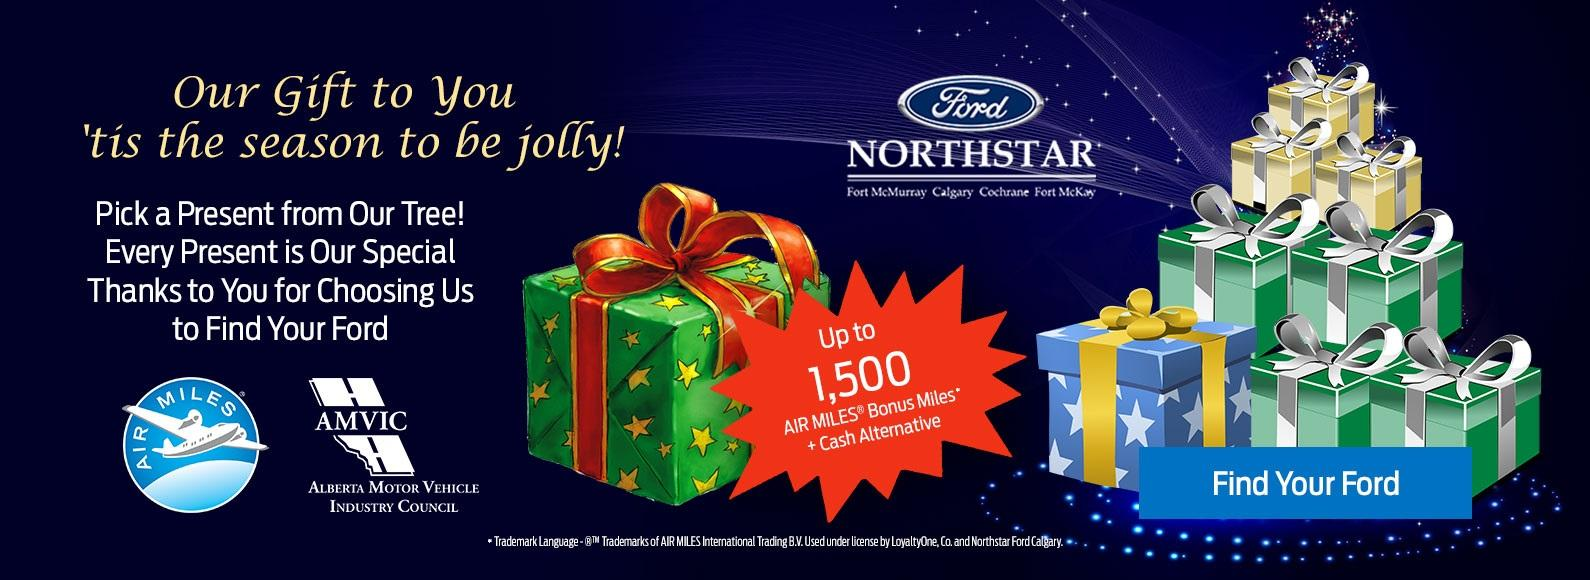 Northstar Ford Calgary Pick a present!